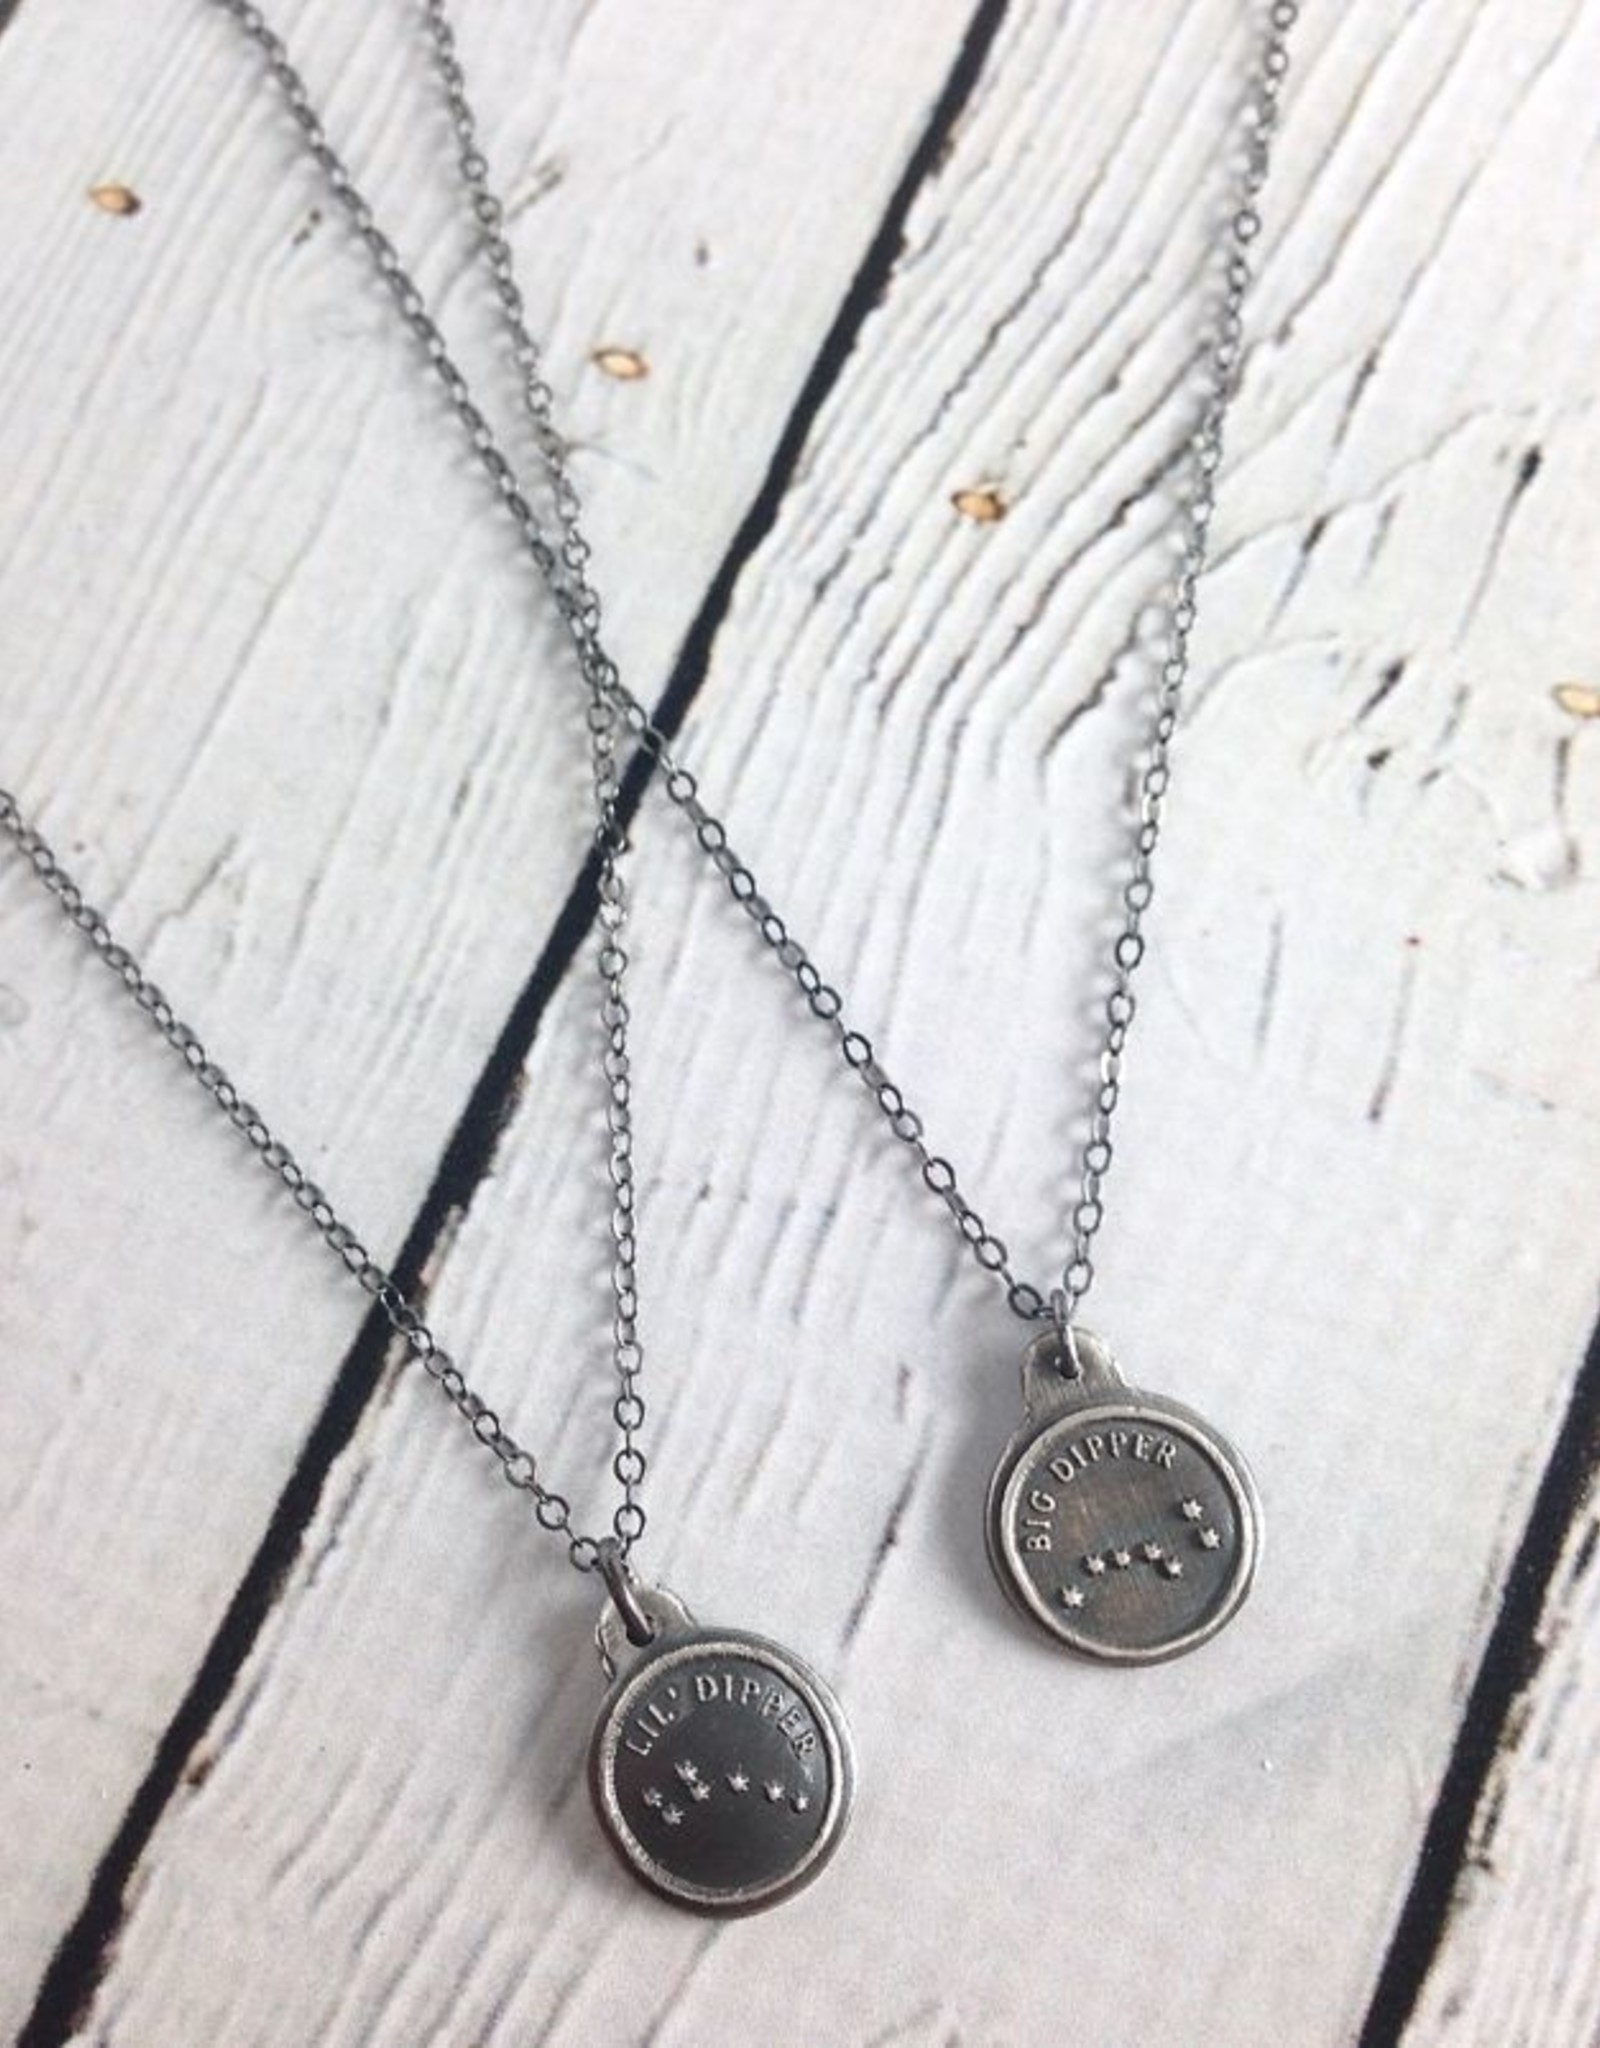 Big Dipper & Little Dipper, Set of 2 Recycled Sterling Silver Necklaces by Figs & Ginger